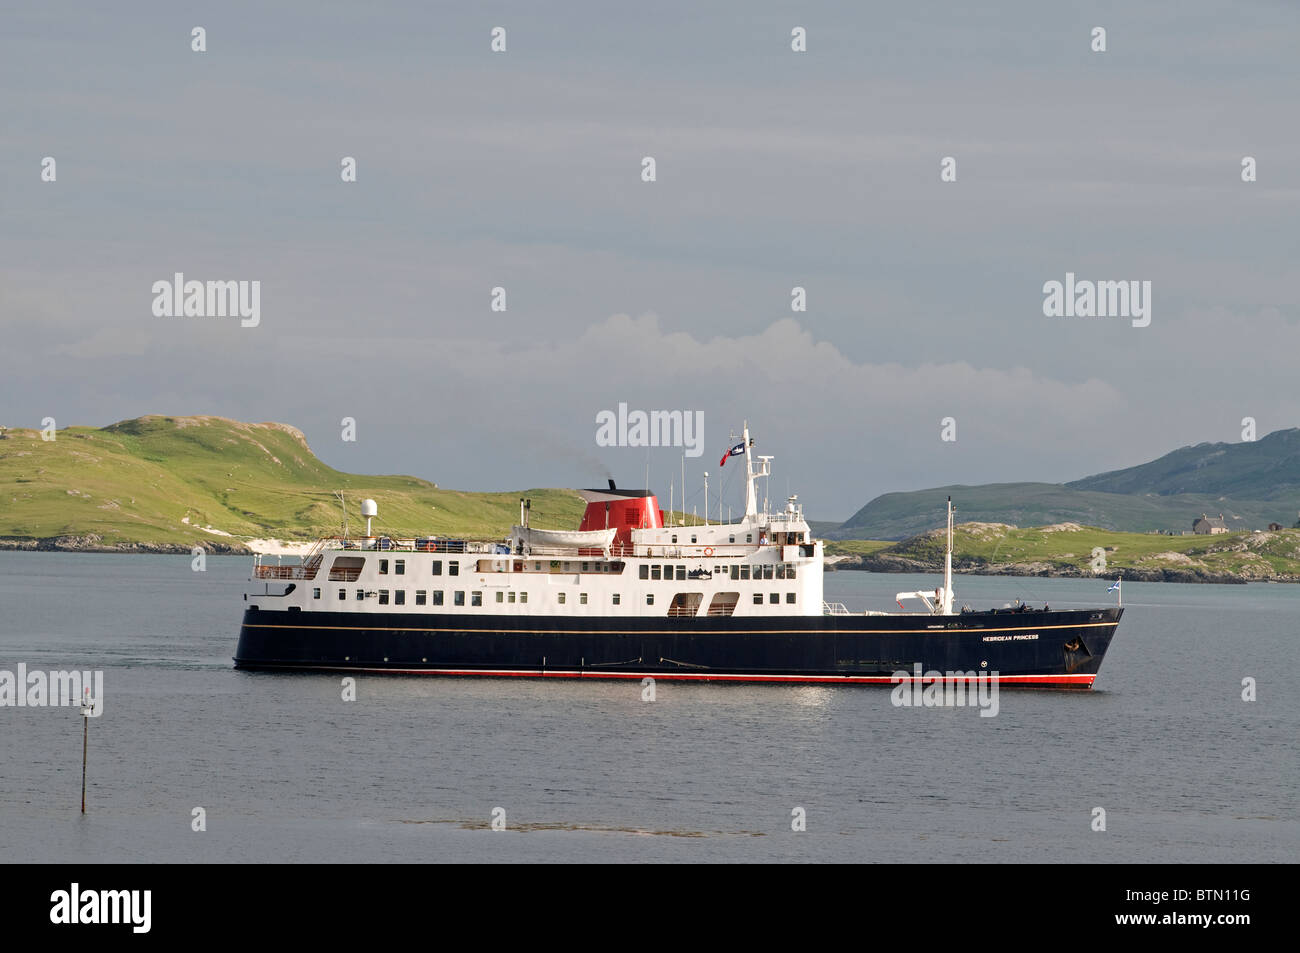 The Small Luxury Cruise ship arriving in Castlebay Isle of Barra, Outer Hebrides, Scotland. SCO 6613 - Stock Image